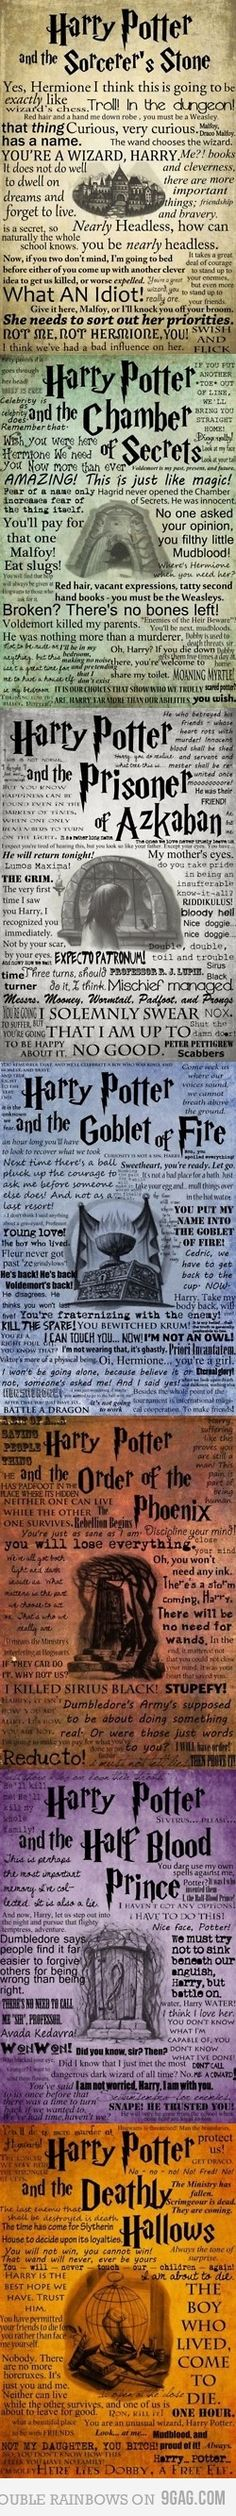 Harry Potter. The best quotes from each book. You bet I am printing these, laminating them, and hanging it in the kids room:)